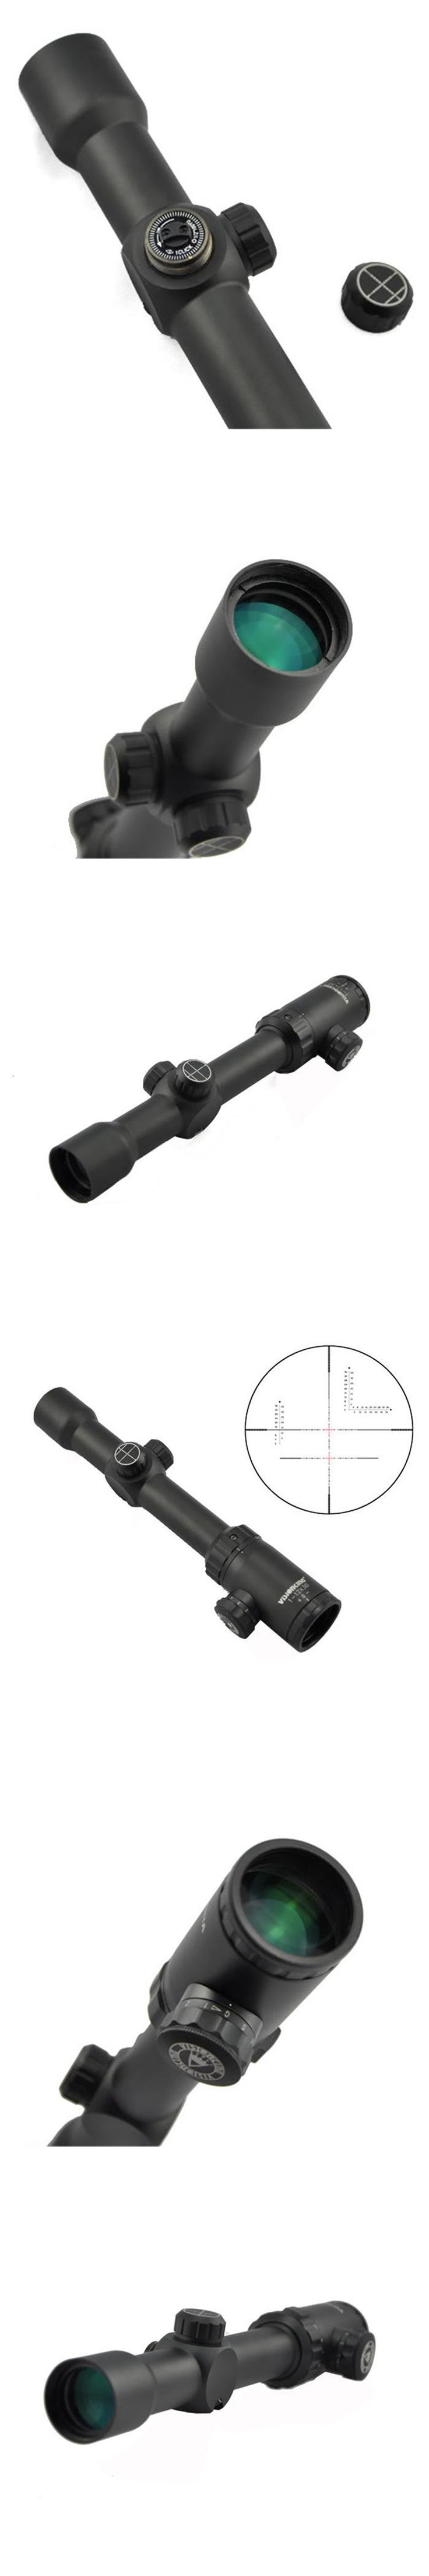 Visionking 1-12x30 Tactical Scope Riflescopes Mil-Dot 30mm Riflescope For Hunting Military Waterproof Rifle Scope Visionking